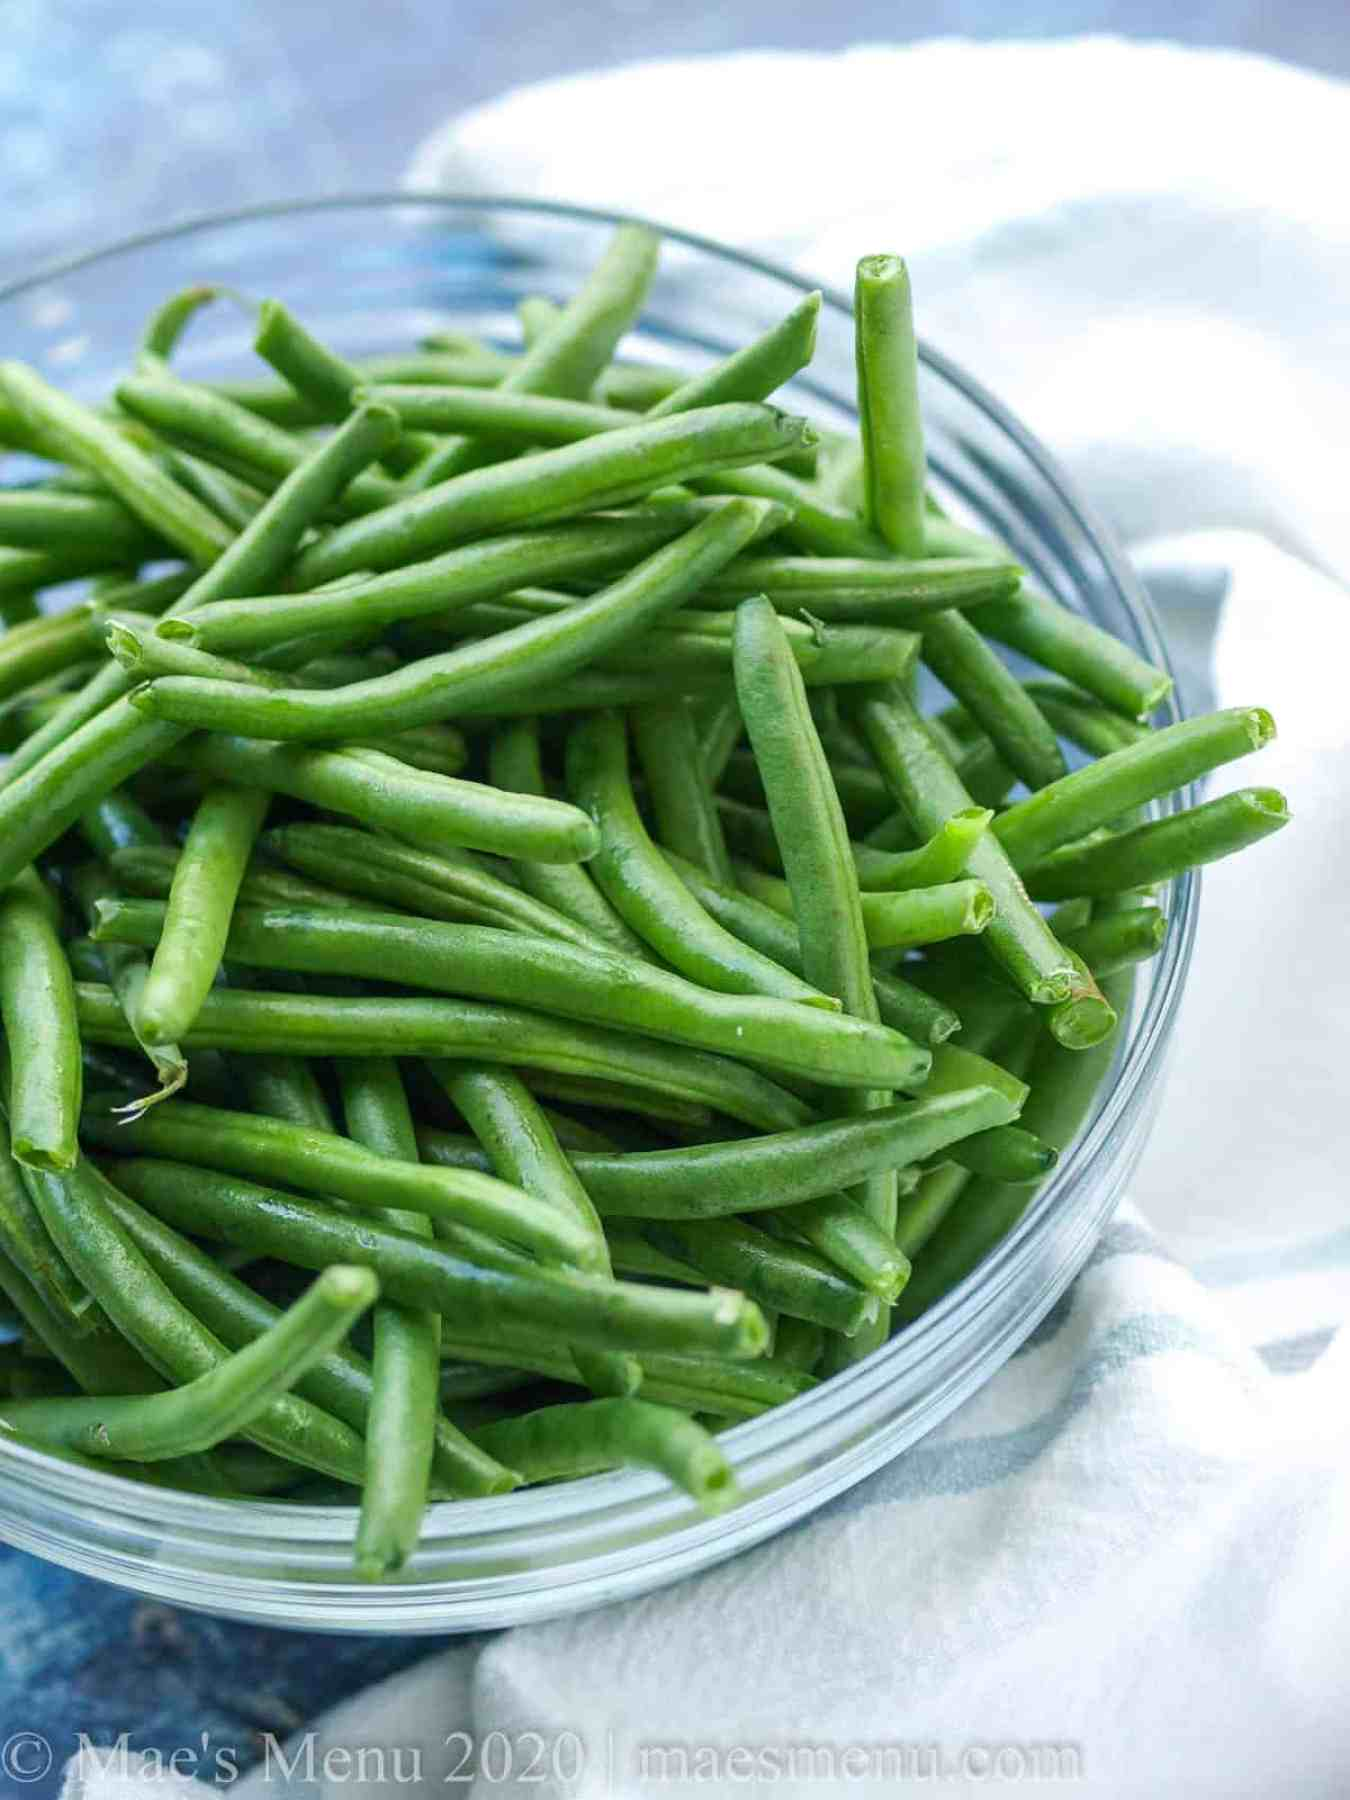 A large bowl of raw green beans.